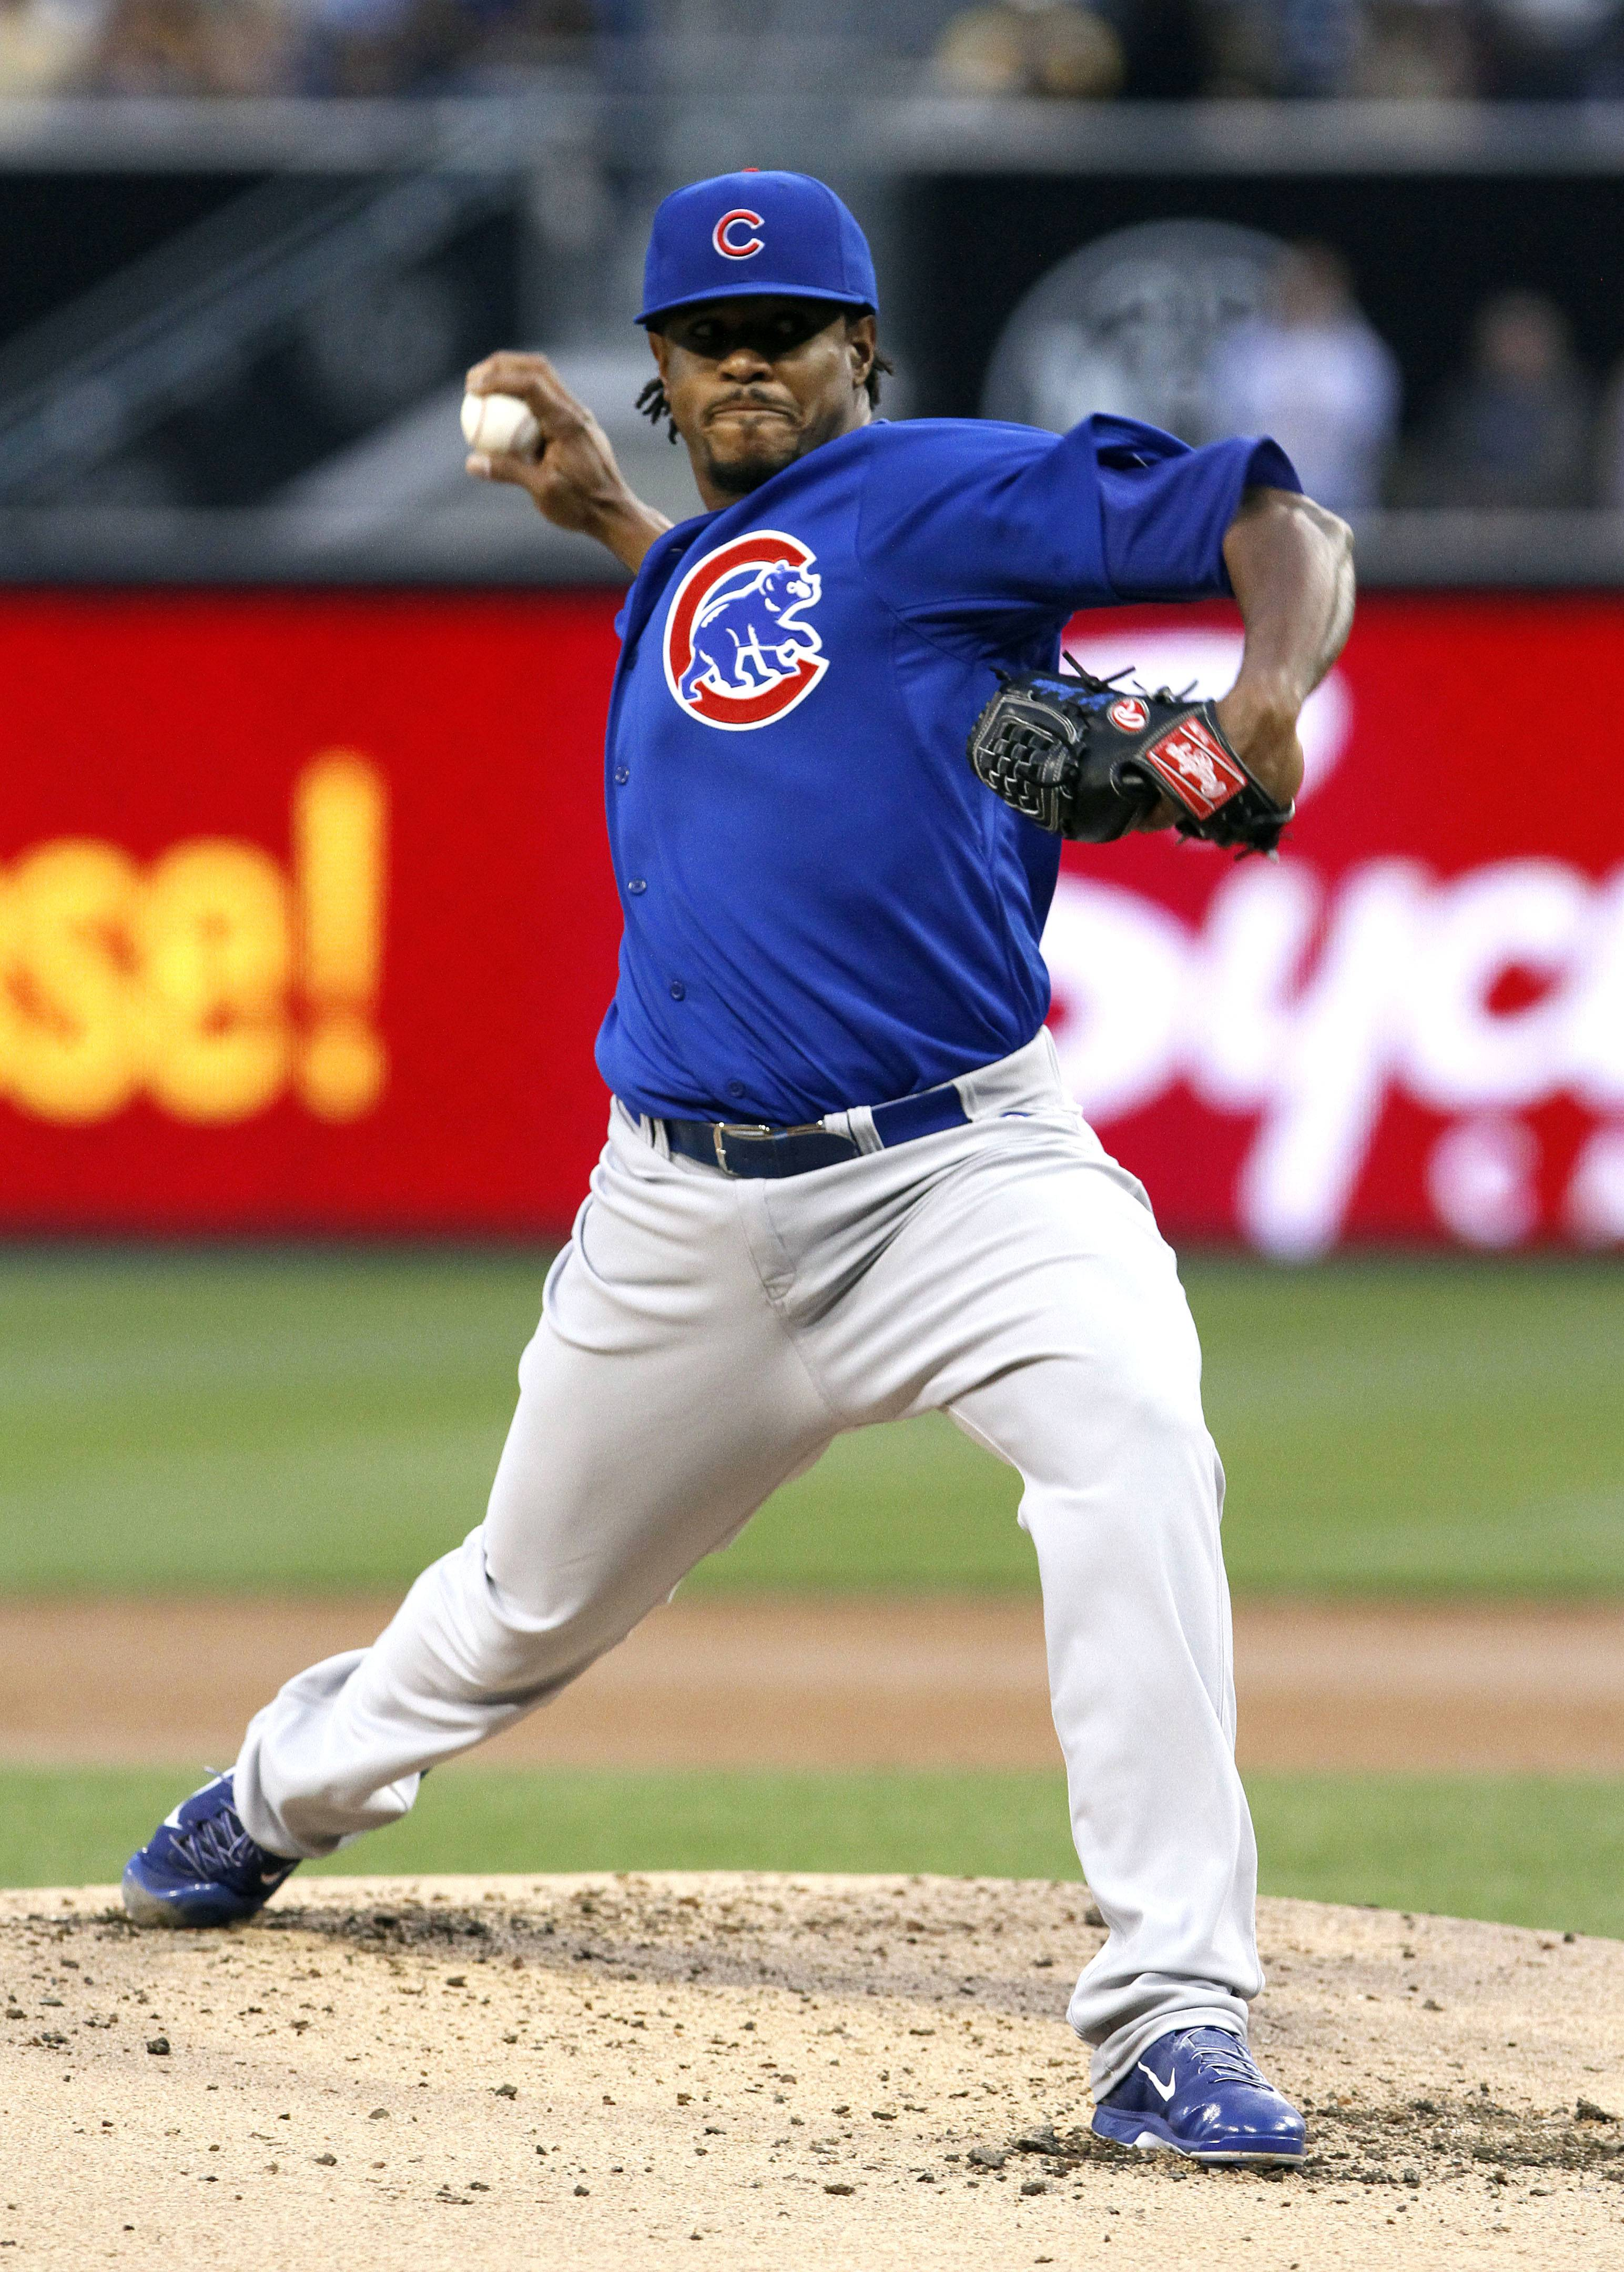 Cubs starter Edwin Jackson (3-4) took the loss and was rocked early, allowing eight runs and nine hits in just four innings.